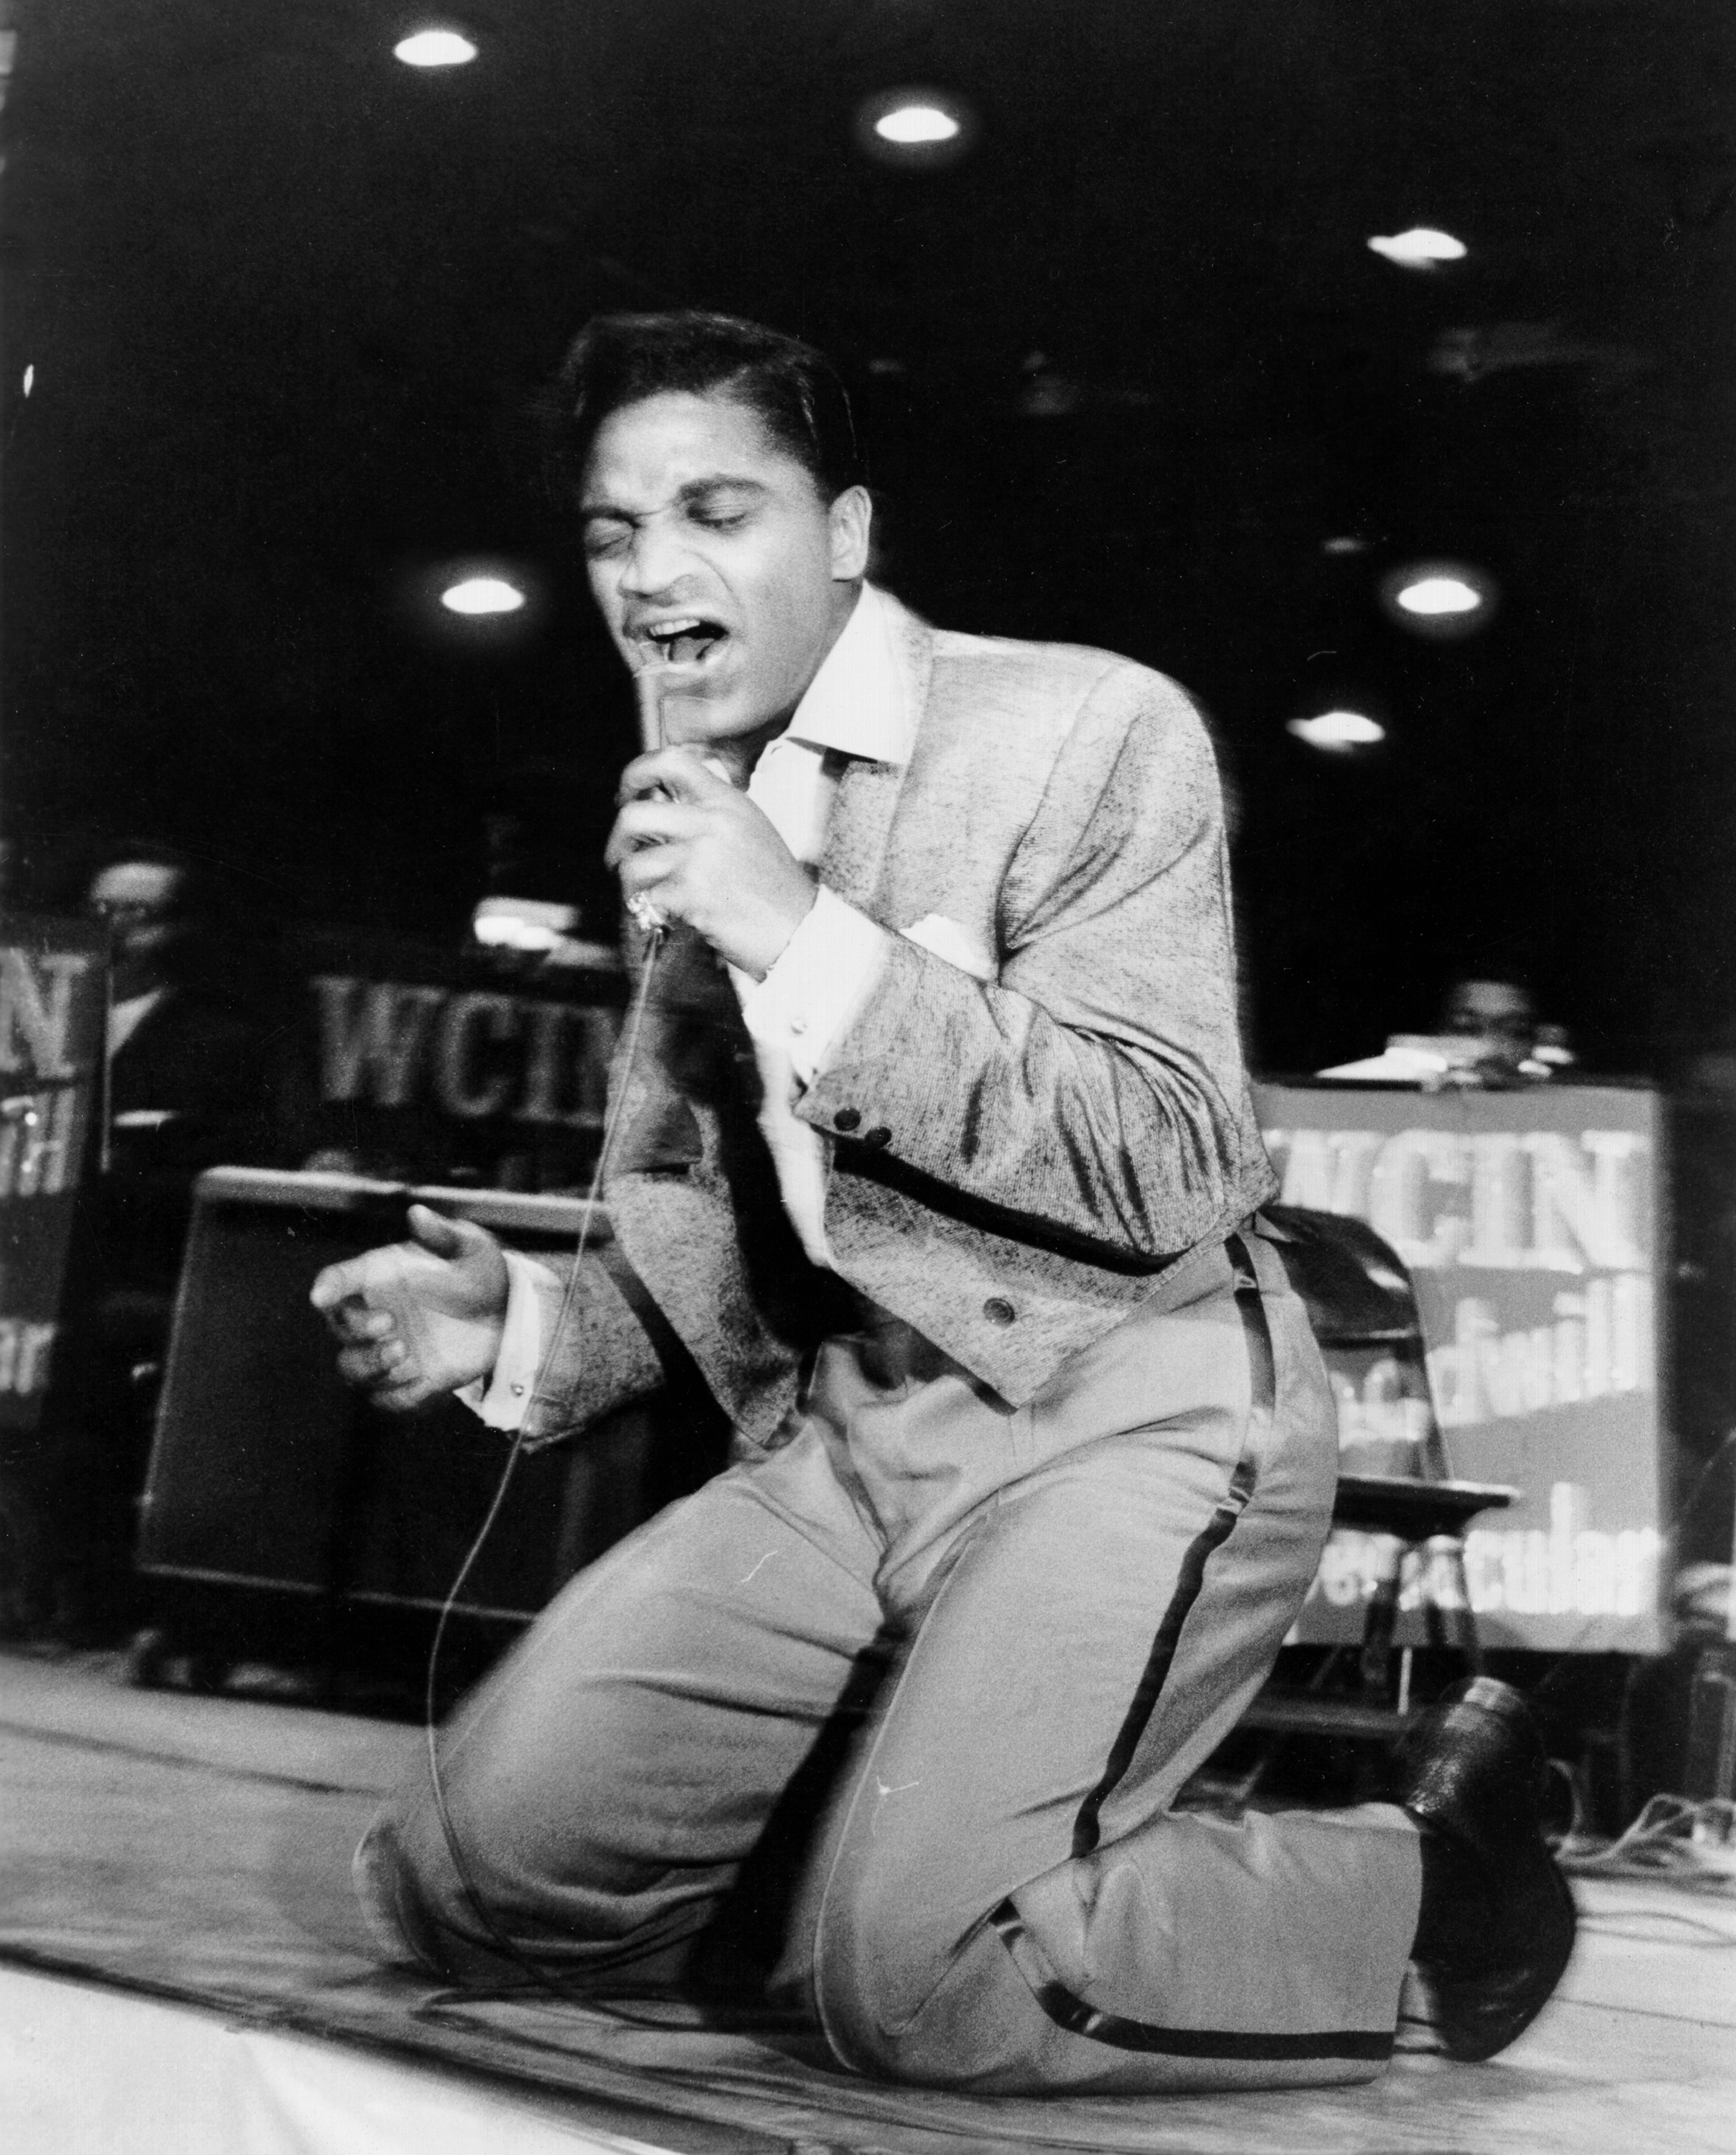 Caption: Mr. Excitement- Jackie Wilson